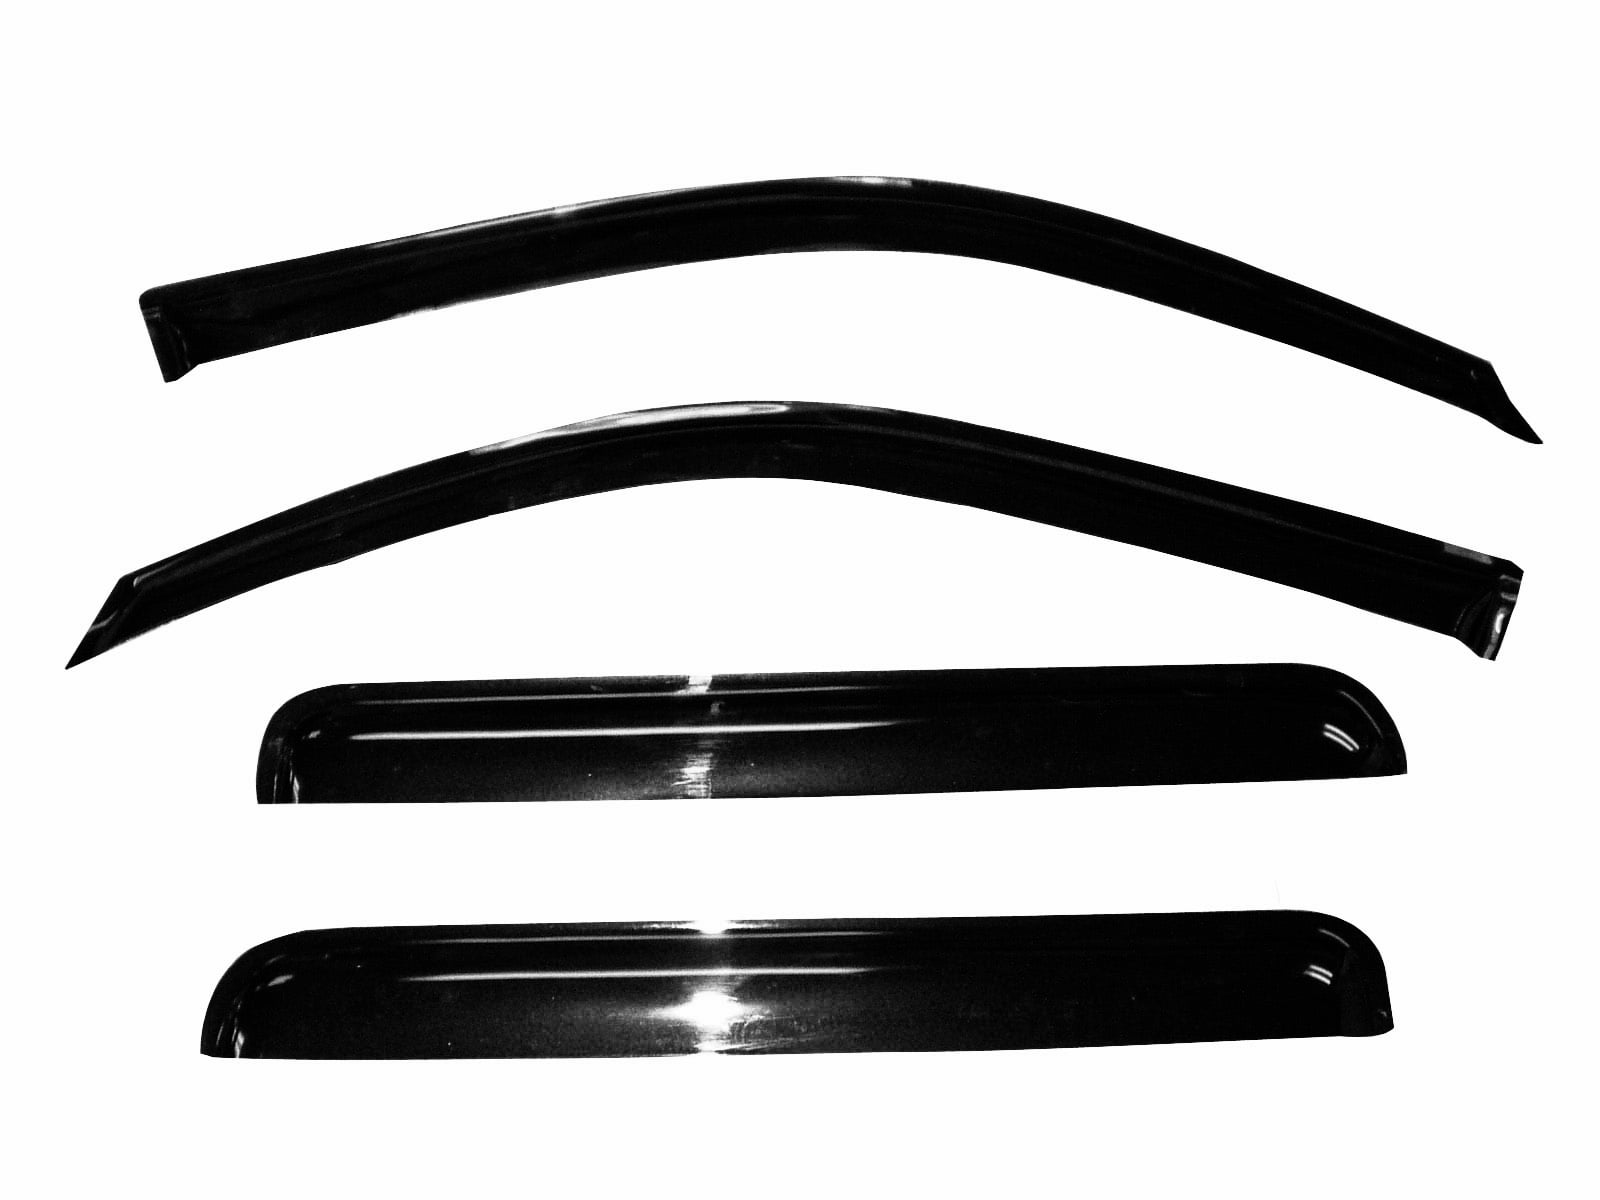 Dodge Ram 1500 Crew Cab Vent Shade Window Visors Rain Guards 09-18